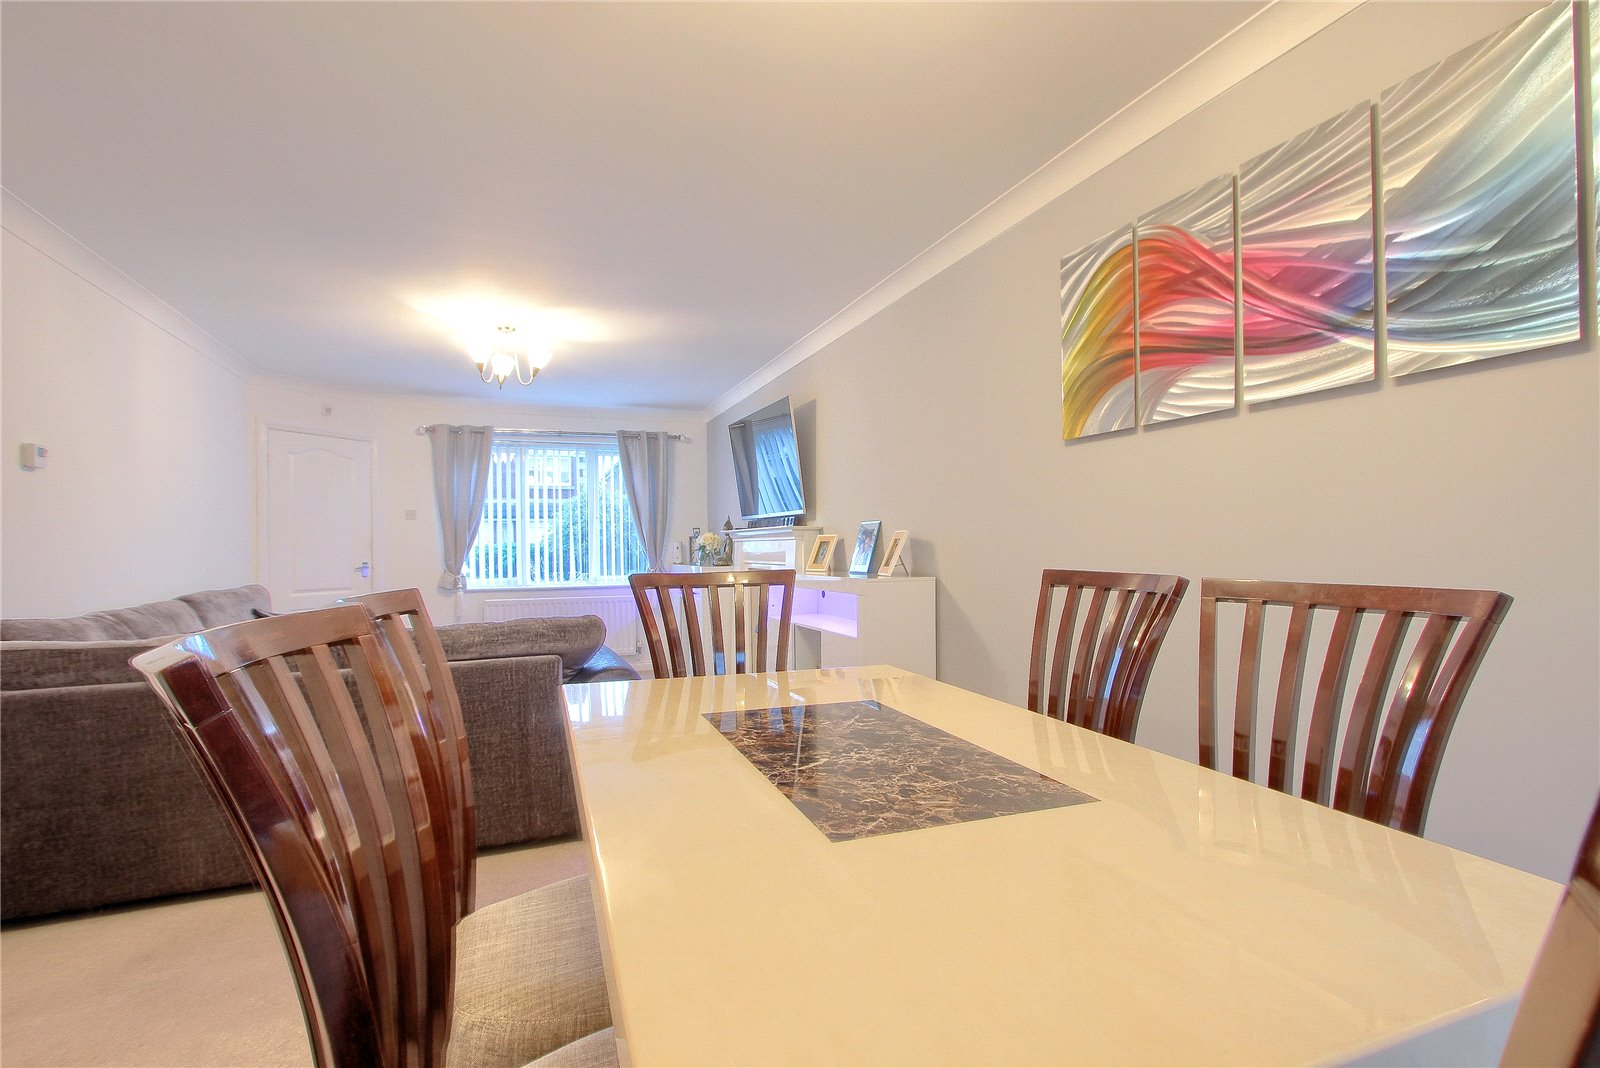 4 bed house for sale in Trevarrian Drive, Redcar  - Property Image 4